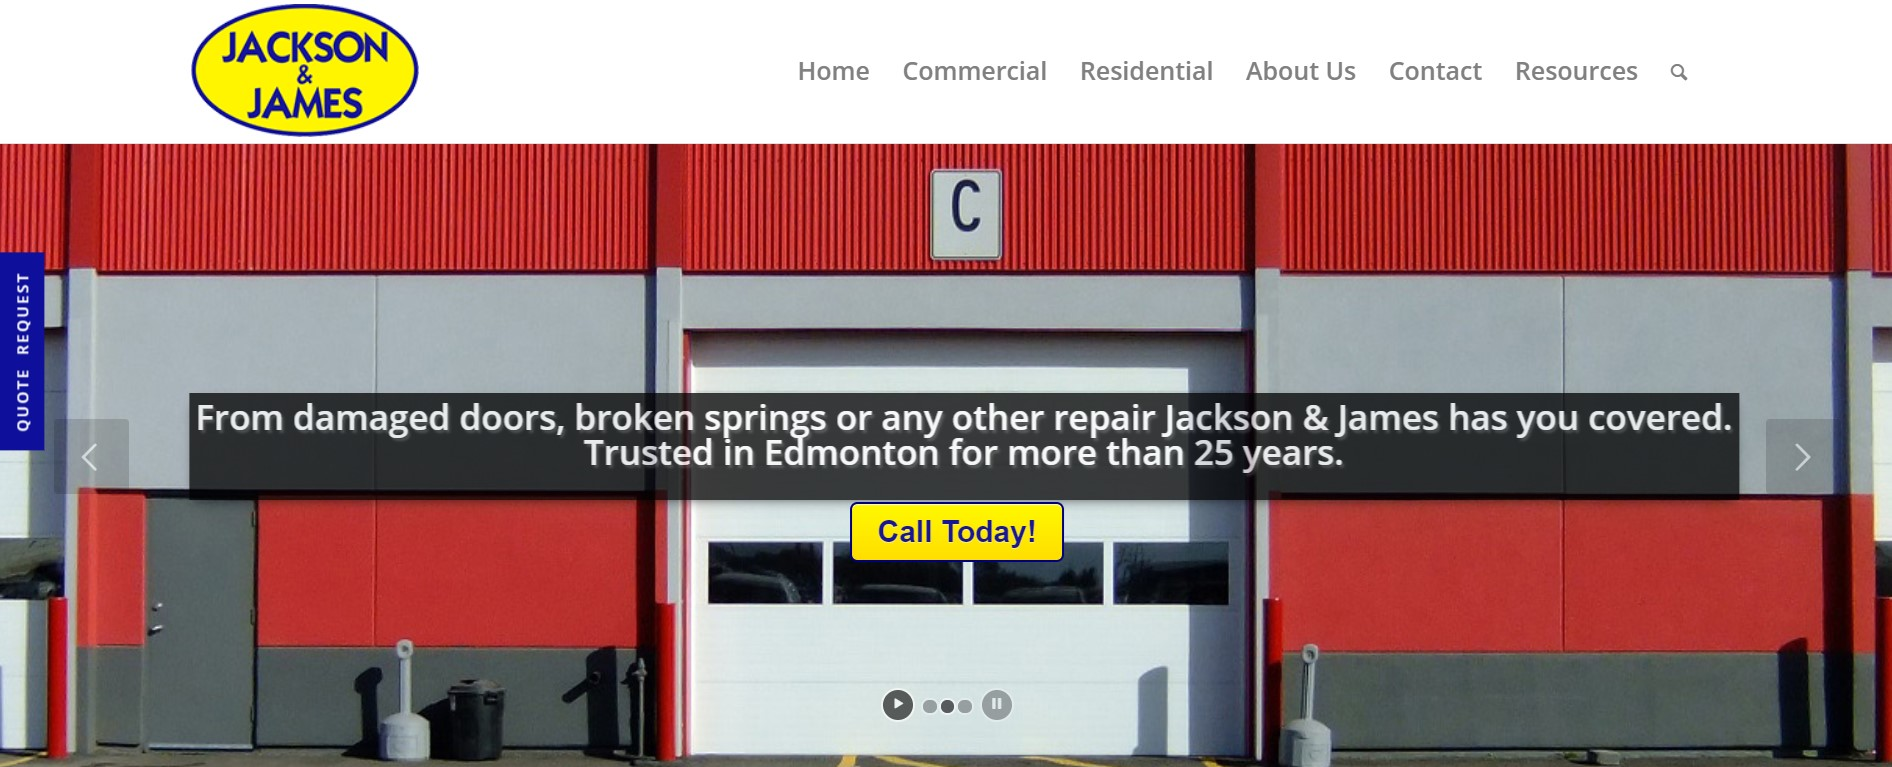 jackson & james garage door repair in edmonton